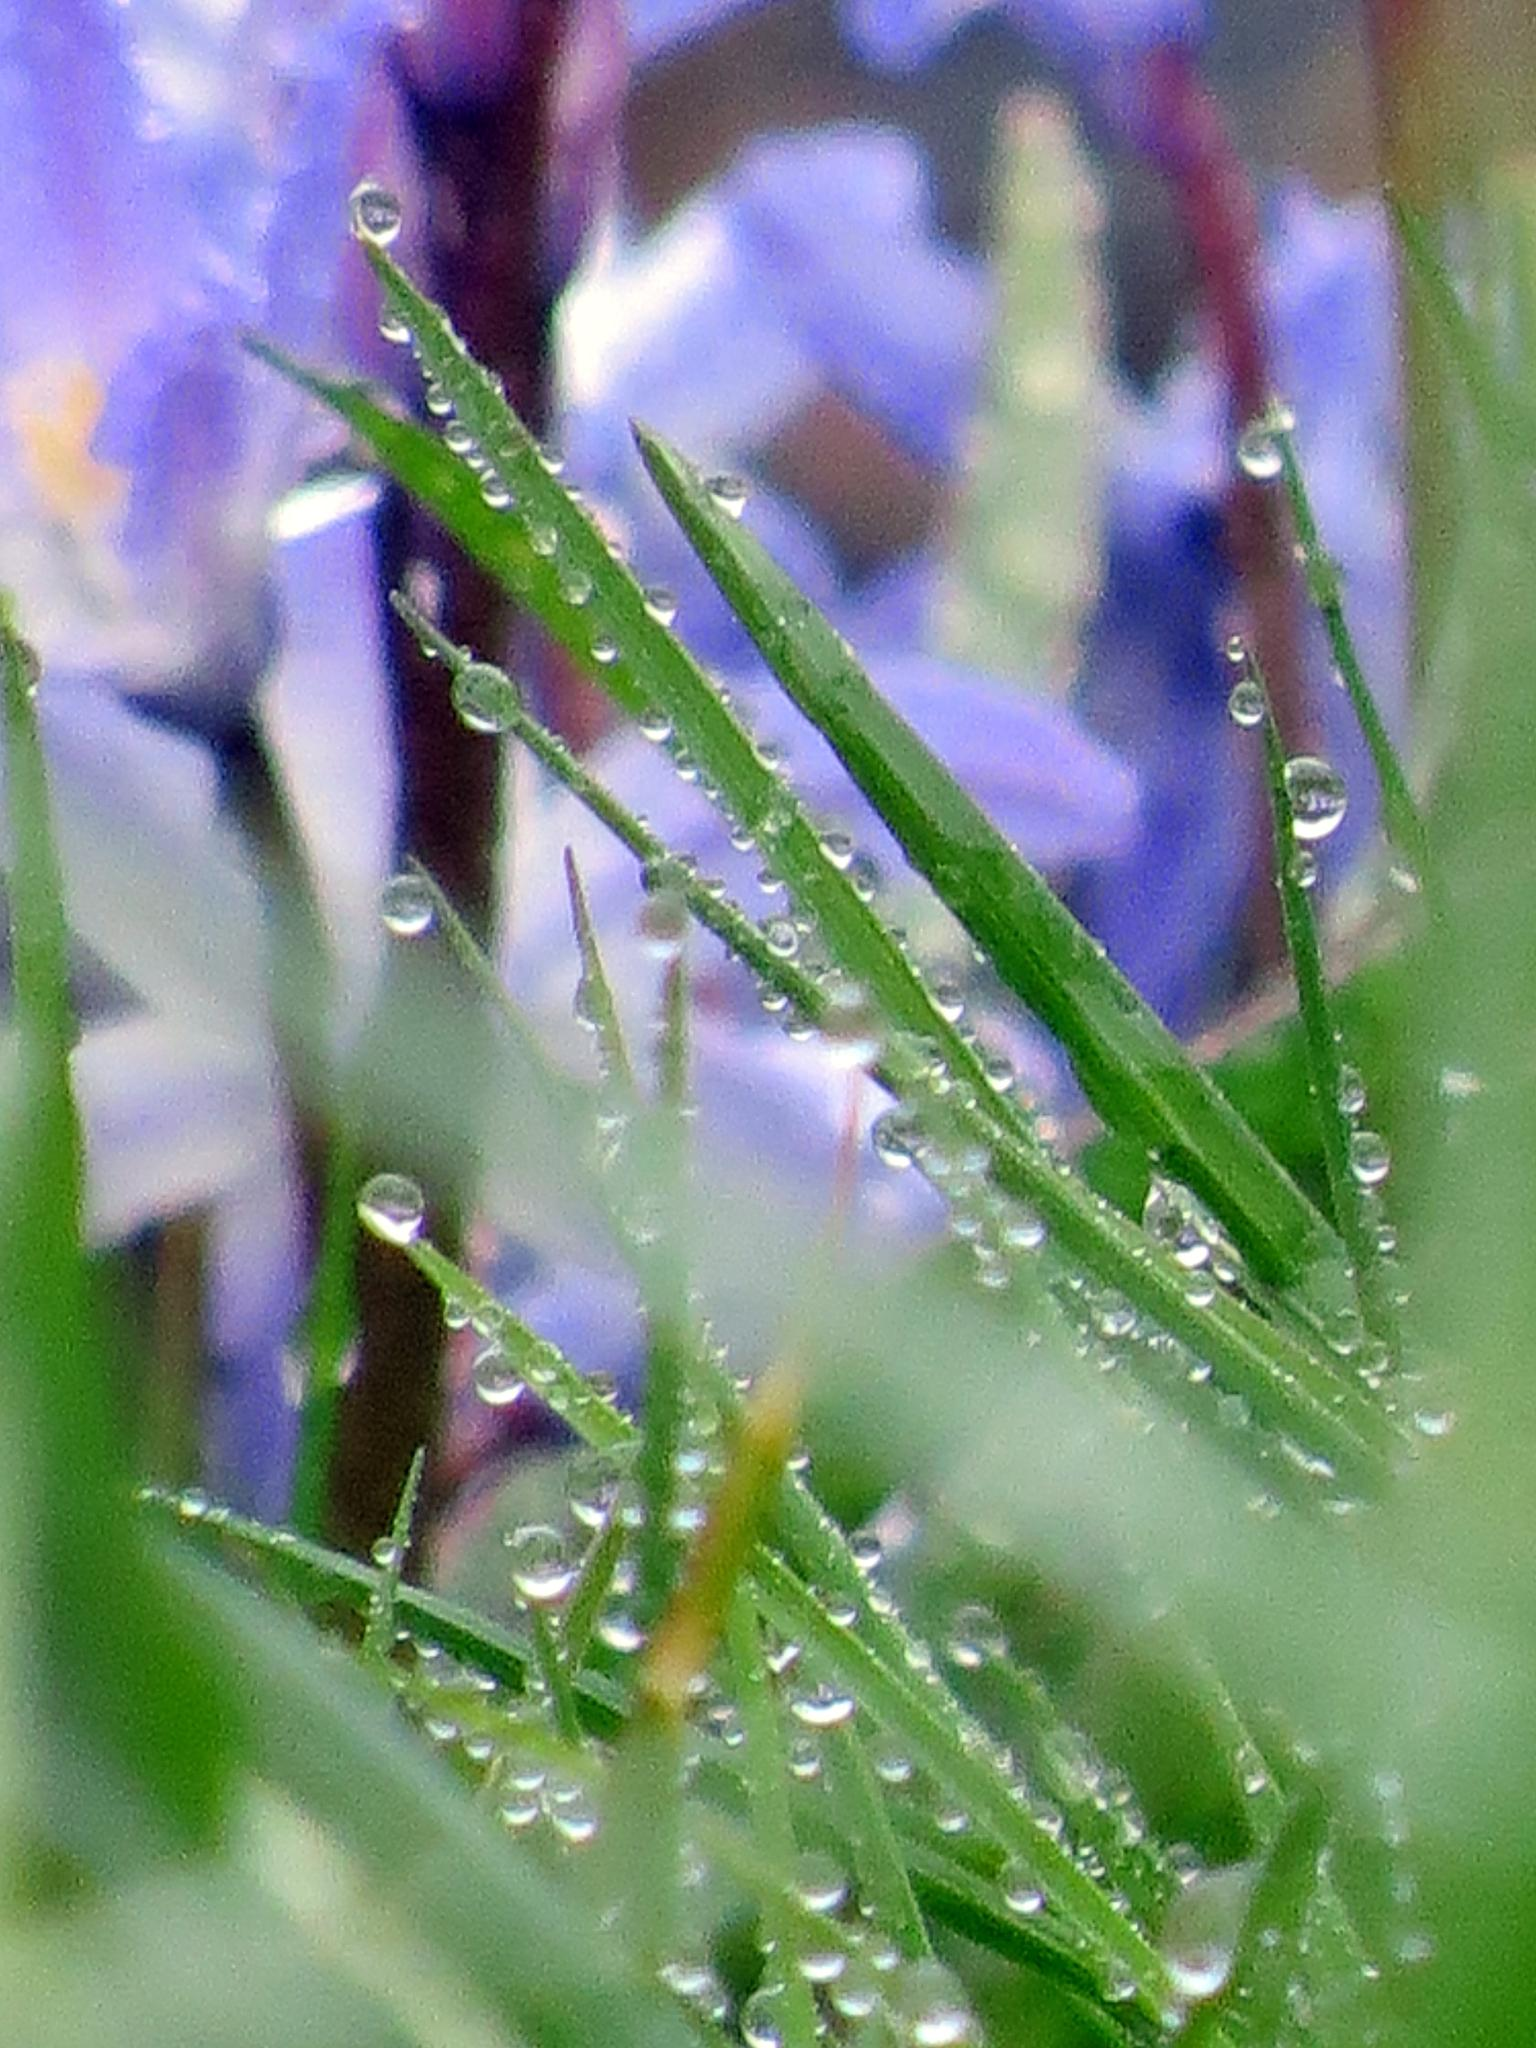 #Spring#Straw#Drops# by marit